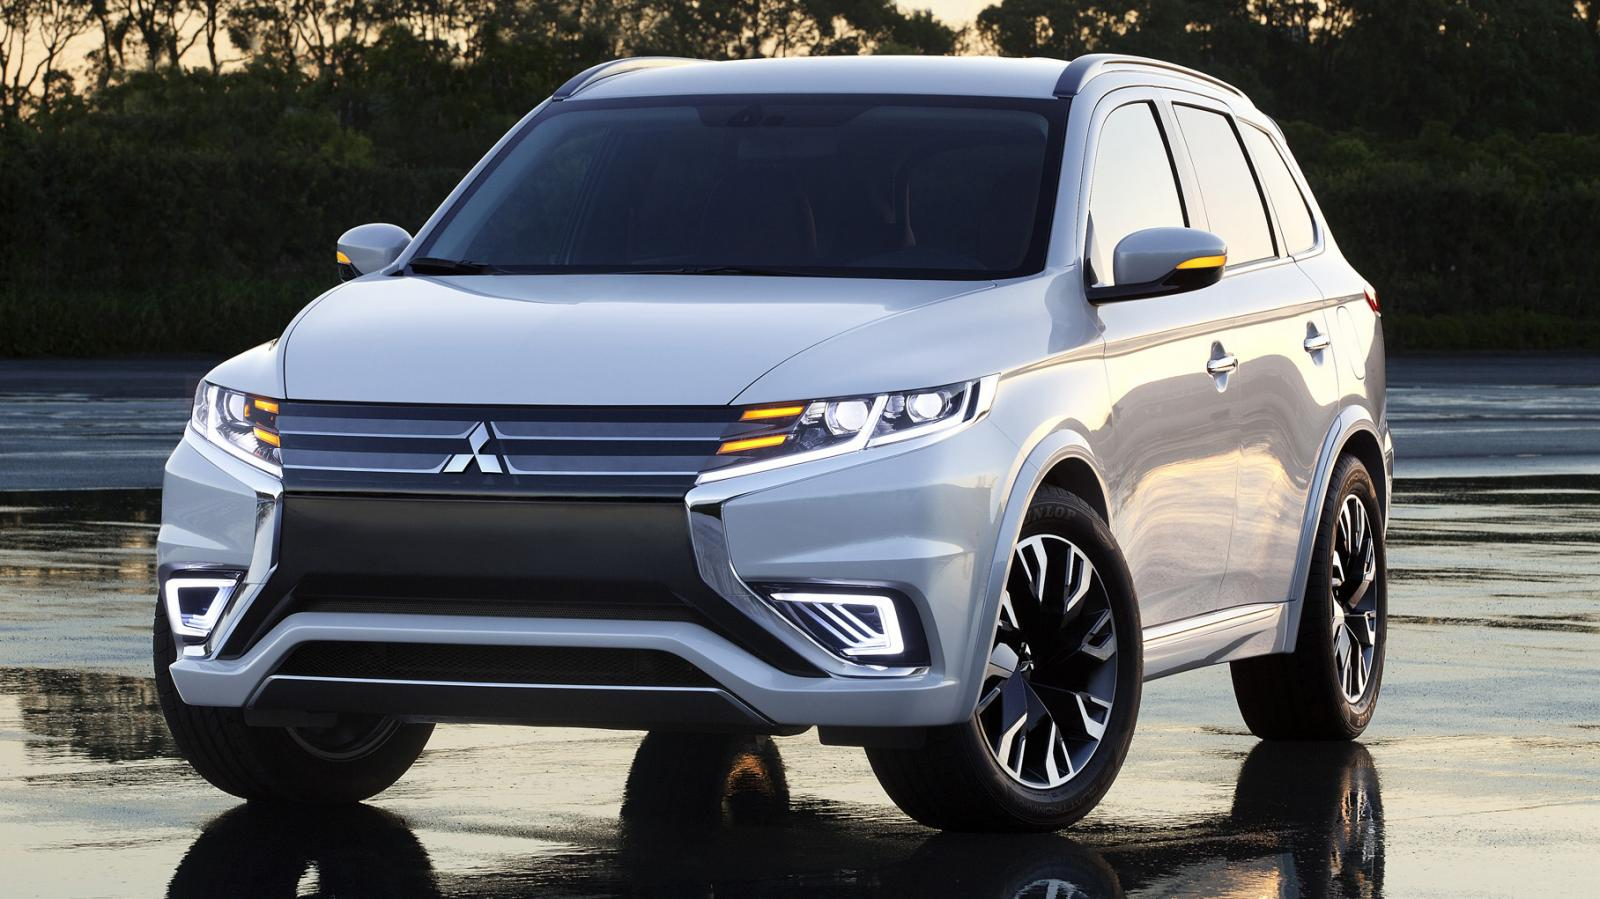 2016 Mitsubishi Outlander Plug-In Hybrid: Revealed At Paris Motor Show